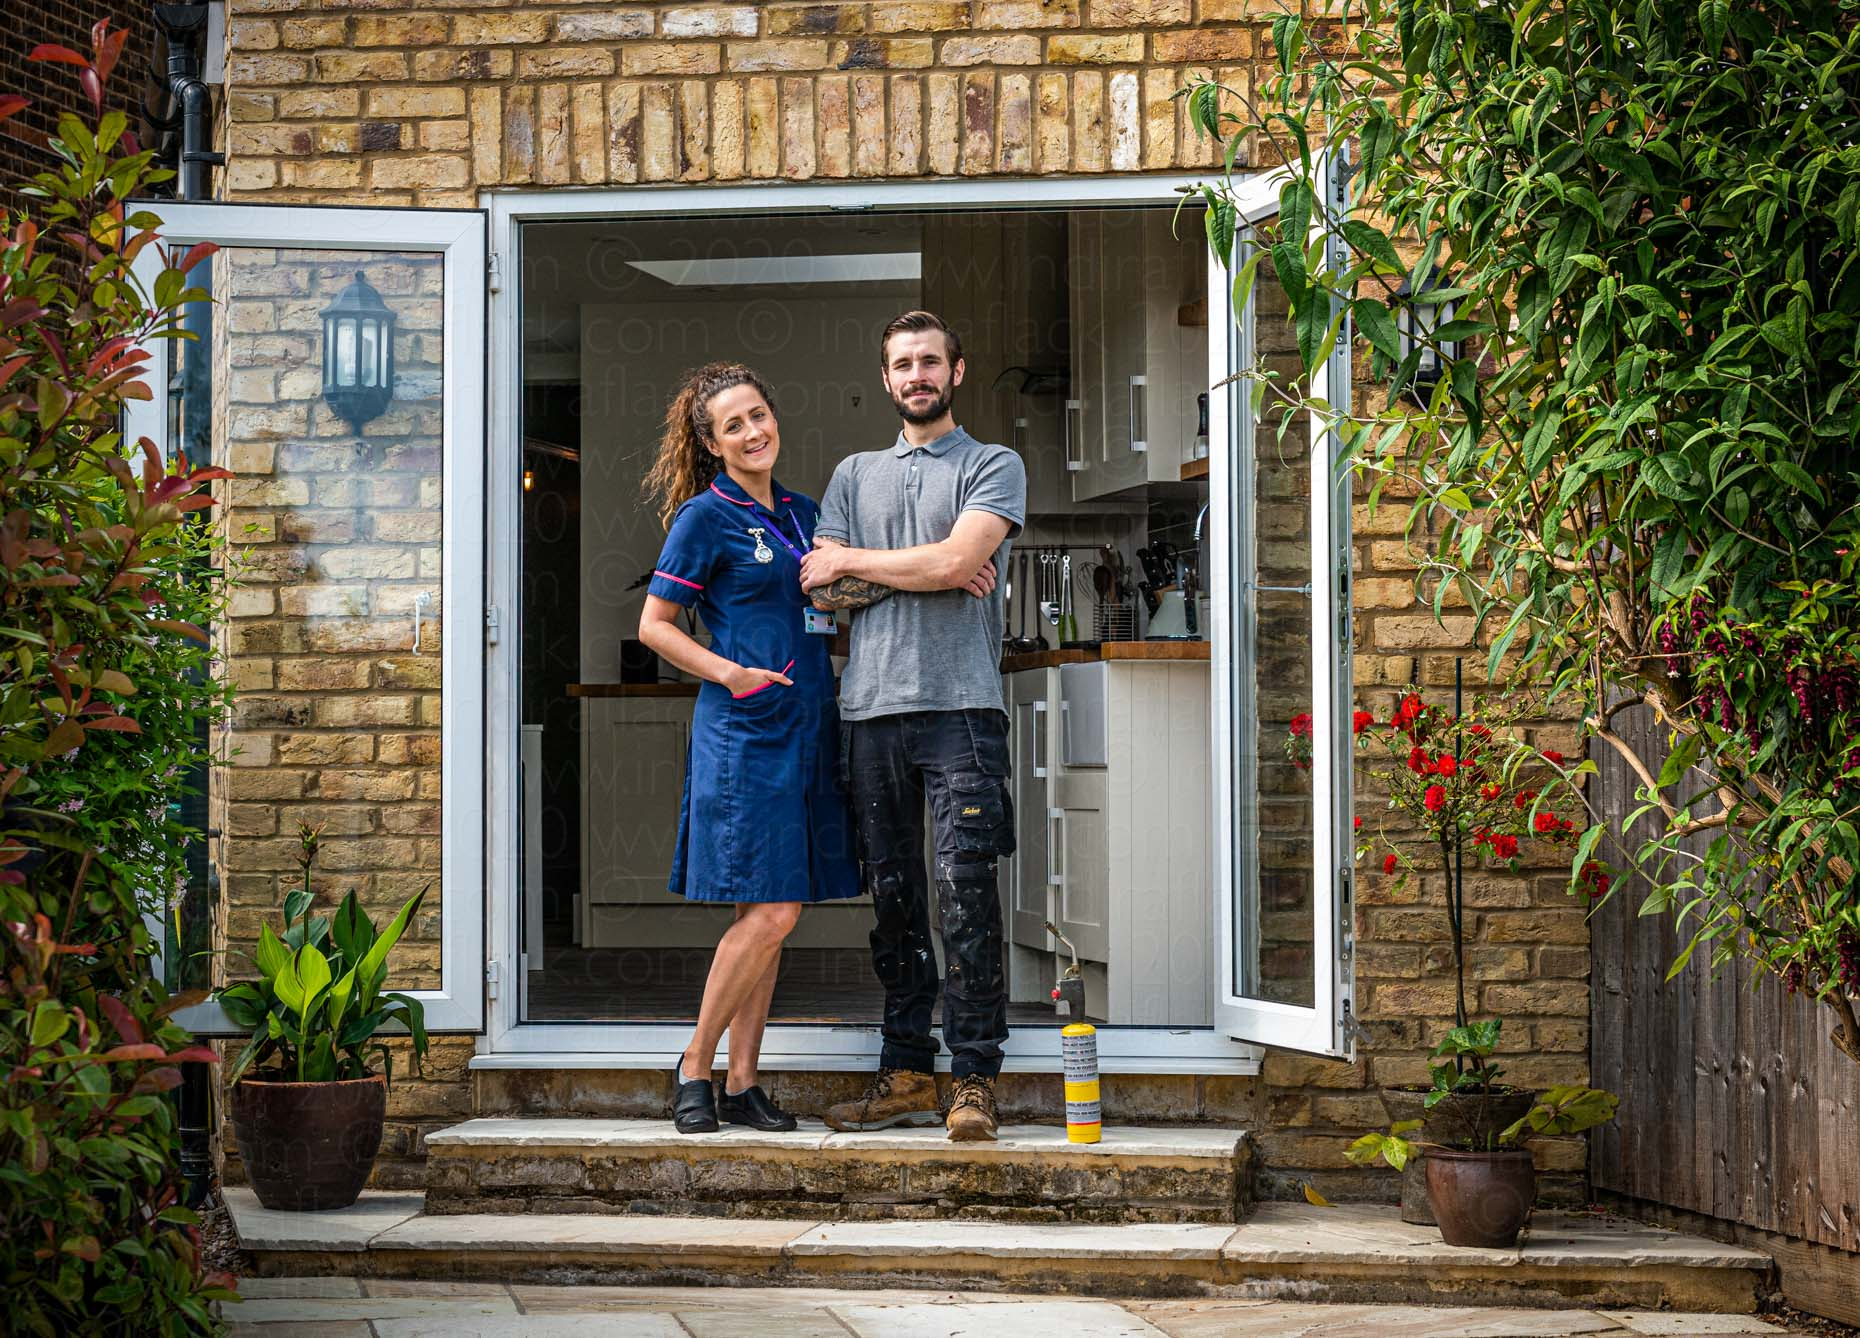 Dan & Bethan neighbours in lockdown portrait taken by Indira Flack portrait photographer